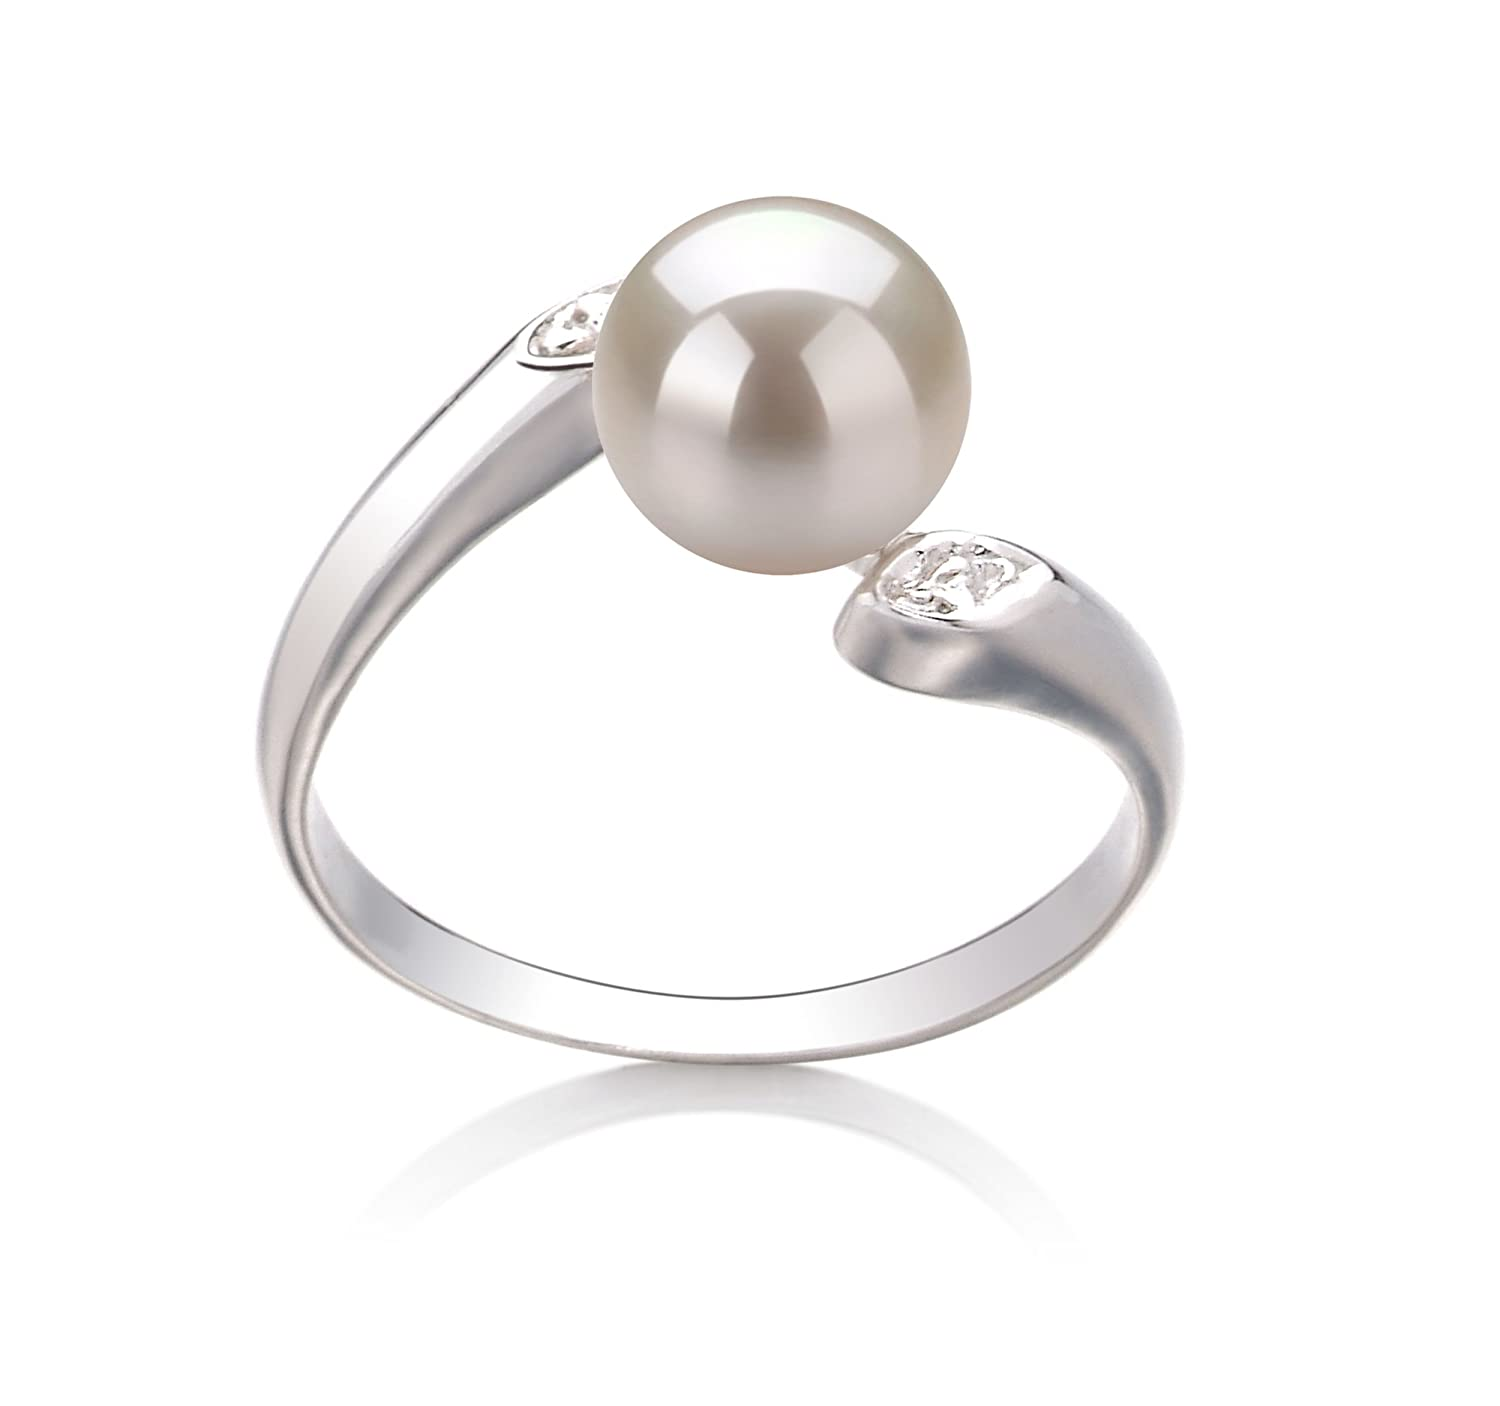 White 6-7mm AAA Quality Freshwater 925 Sterling Silver Cultured Pearl Ring